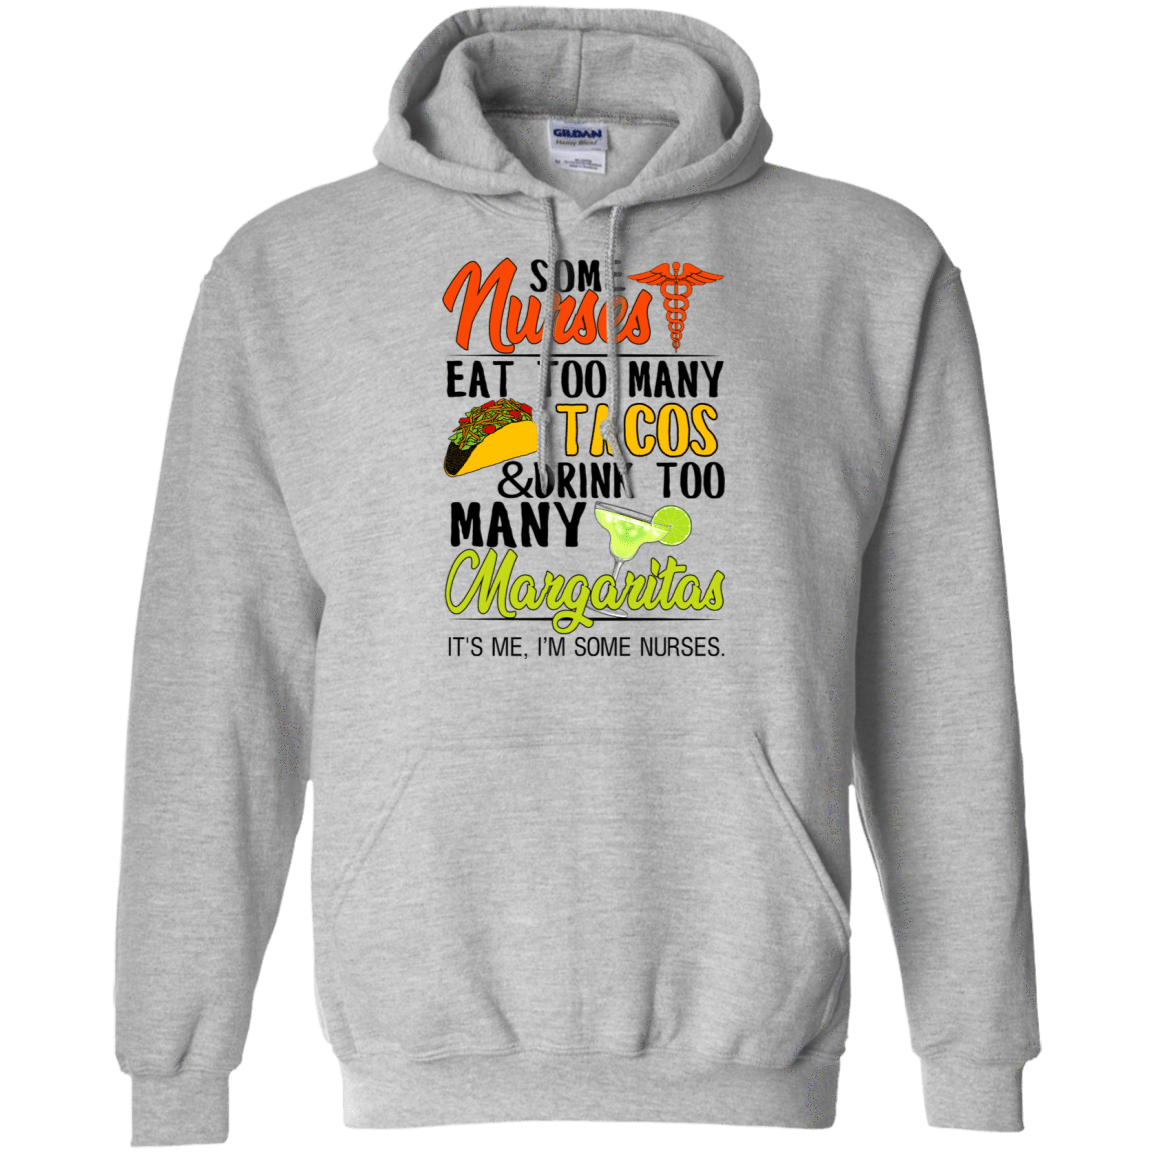 Some Nurses Eat Too Many Tacos & Drink Too Many Margaritas It's Me I'm Some Nurses T-Shirts & Hoodies 541-4741-76452266-23111 - Tee Ript